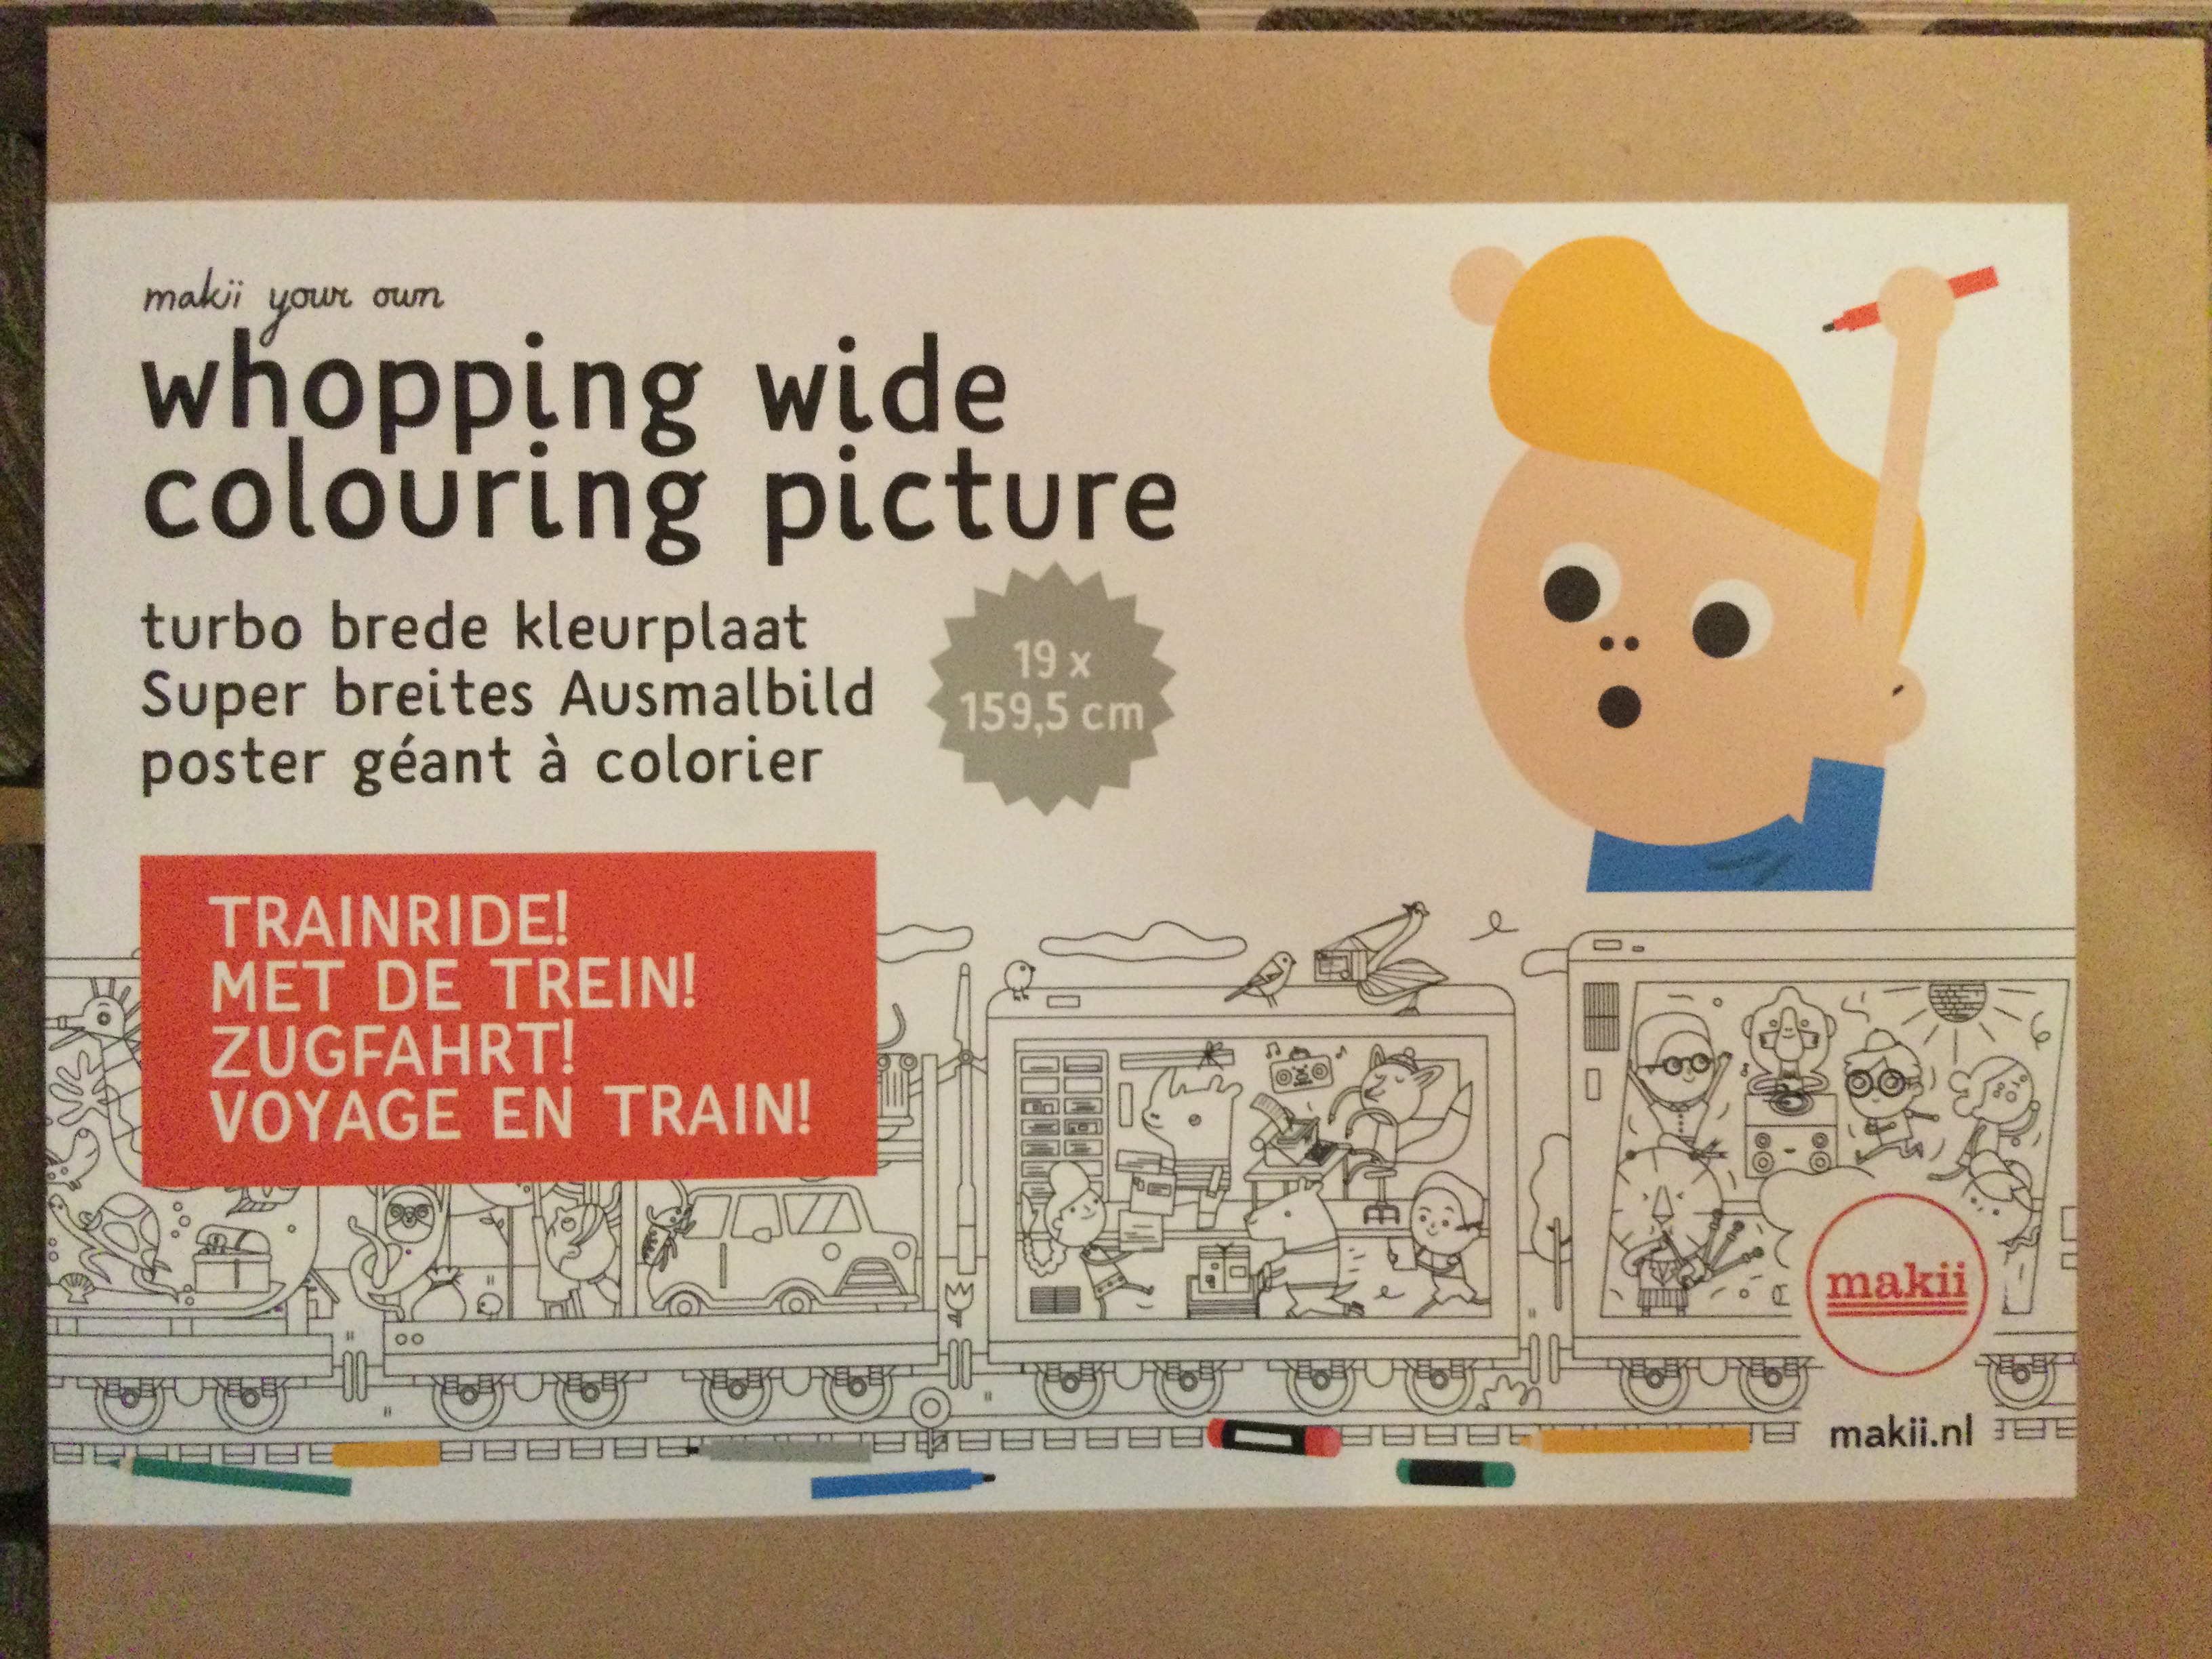 Makii - whopping wide colouring picture- Trainride